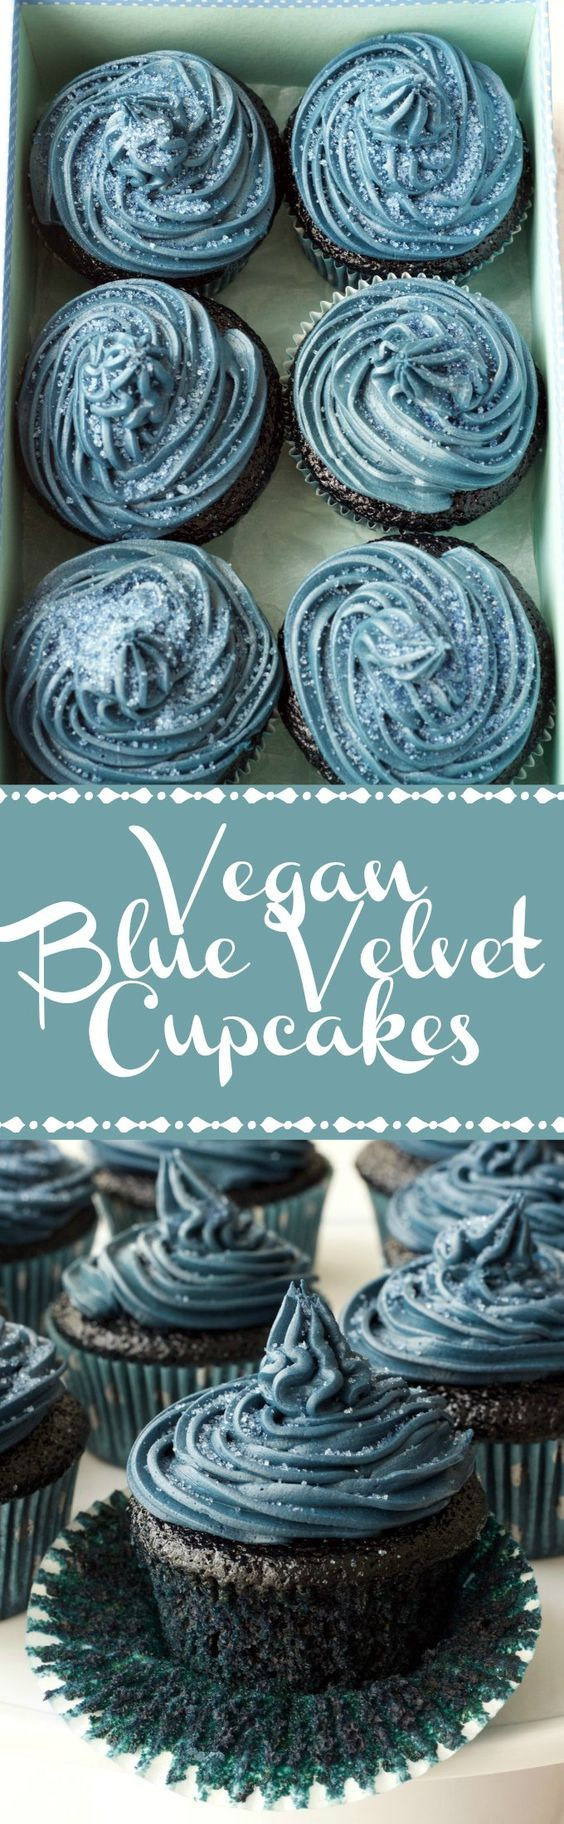 Rich, moist and spongey vegan blue velvet cupcakes topped with a delicious blue velvet frosting. Simple and easy to make, and delicious to eat!